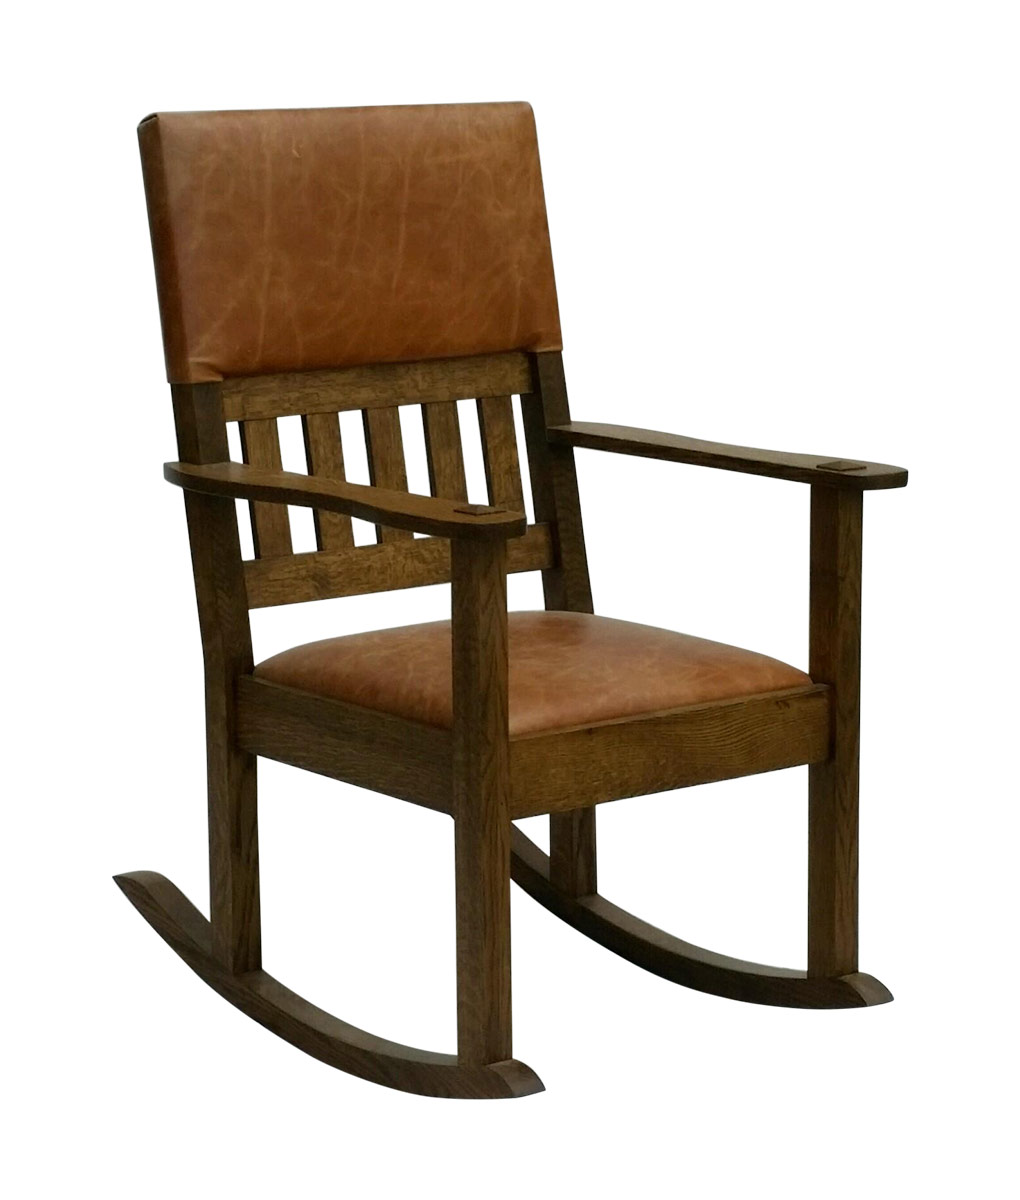 cedar rocking chairs chair covers quality stickley mission craftsman style with leather seat